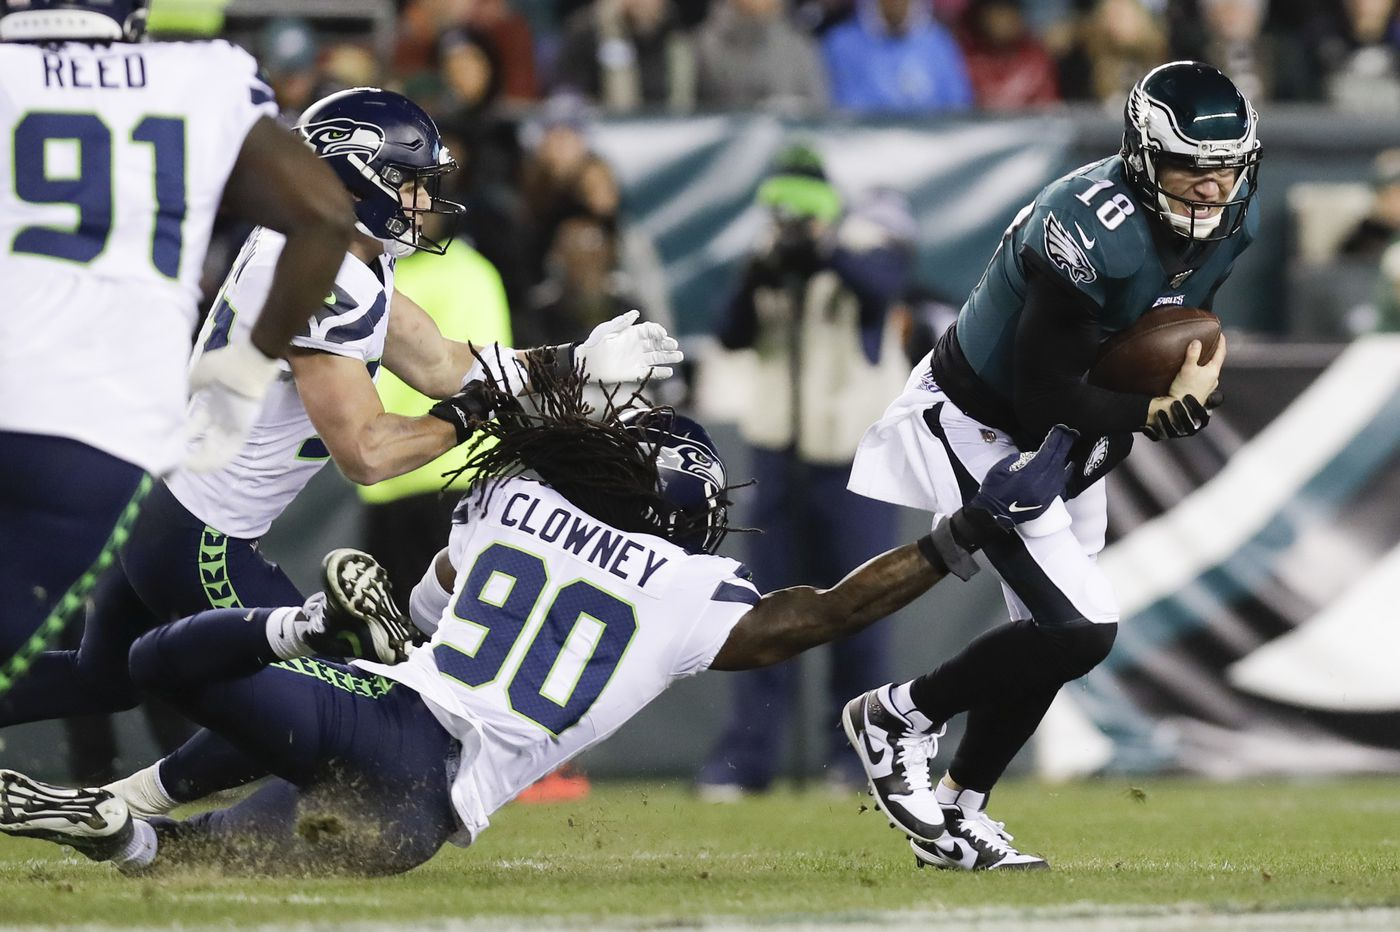 Eagles-Seahawks observations: Josh McCown steps up with Carson Wentz out, Russell Wilson makes big plays | Marcus Hayes